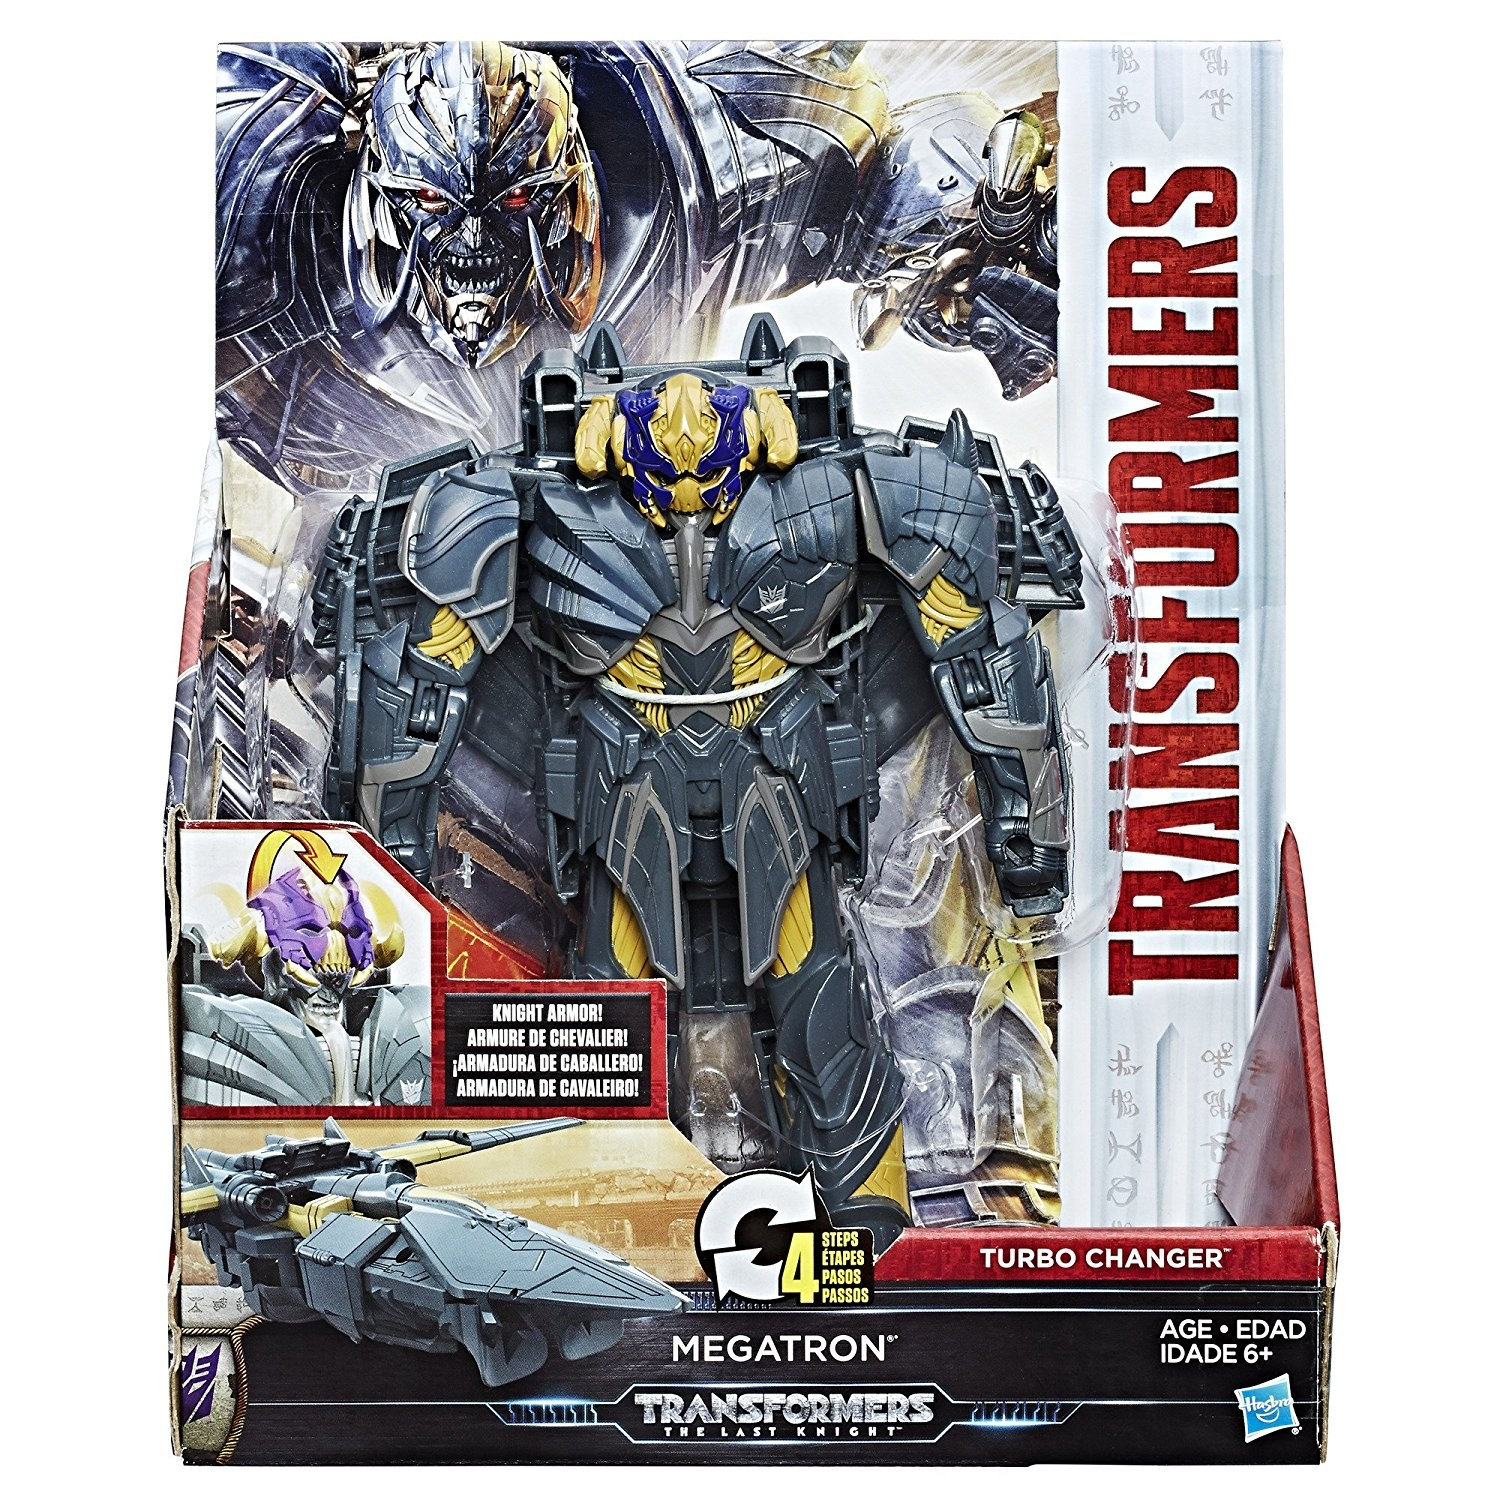 Wave 2 Deluxes And More For Transformers The Last Knight Toys On